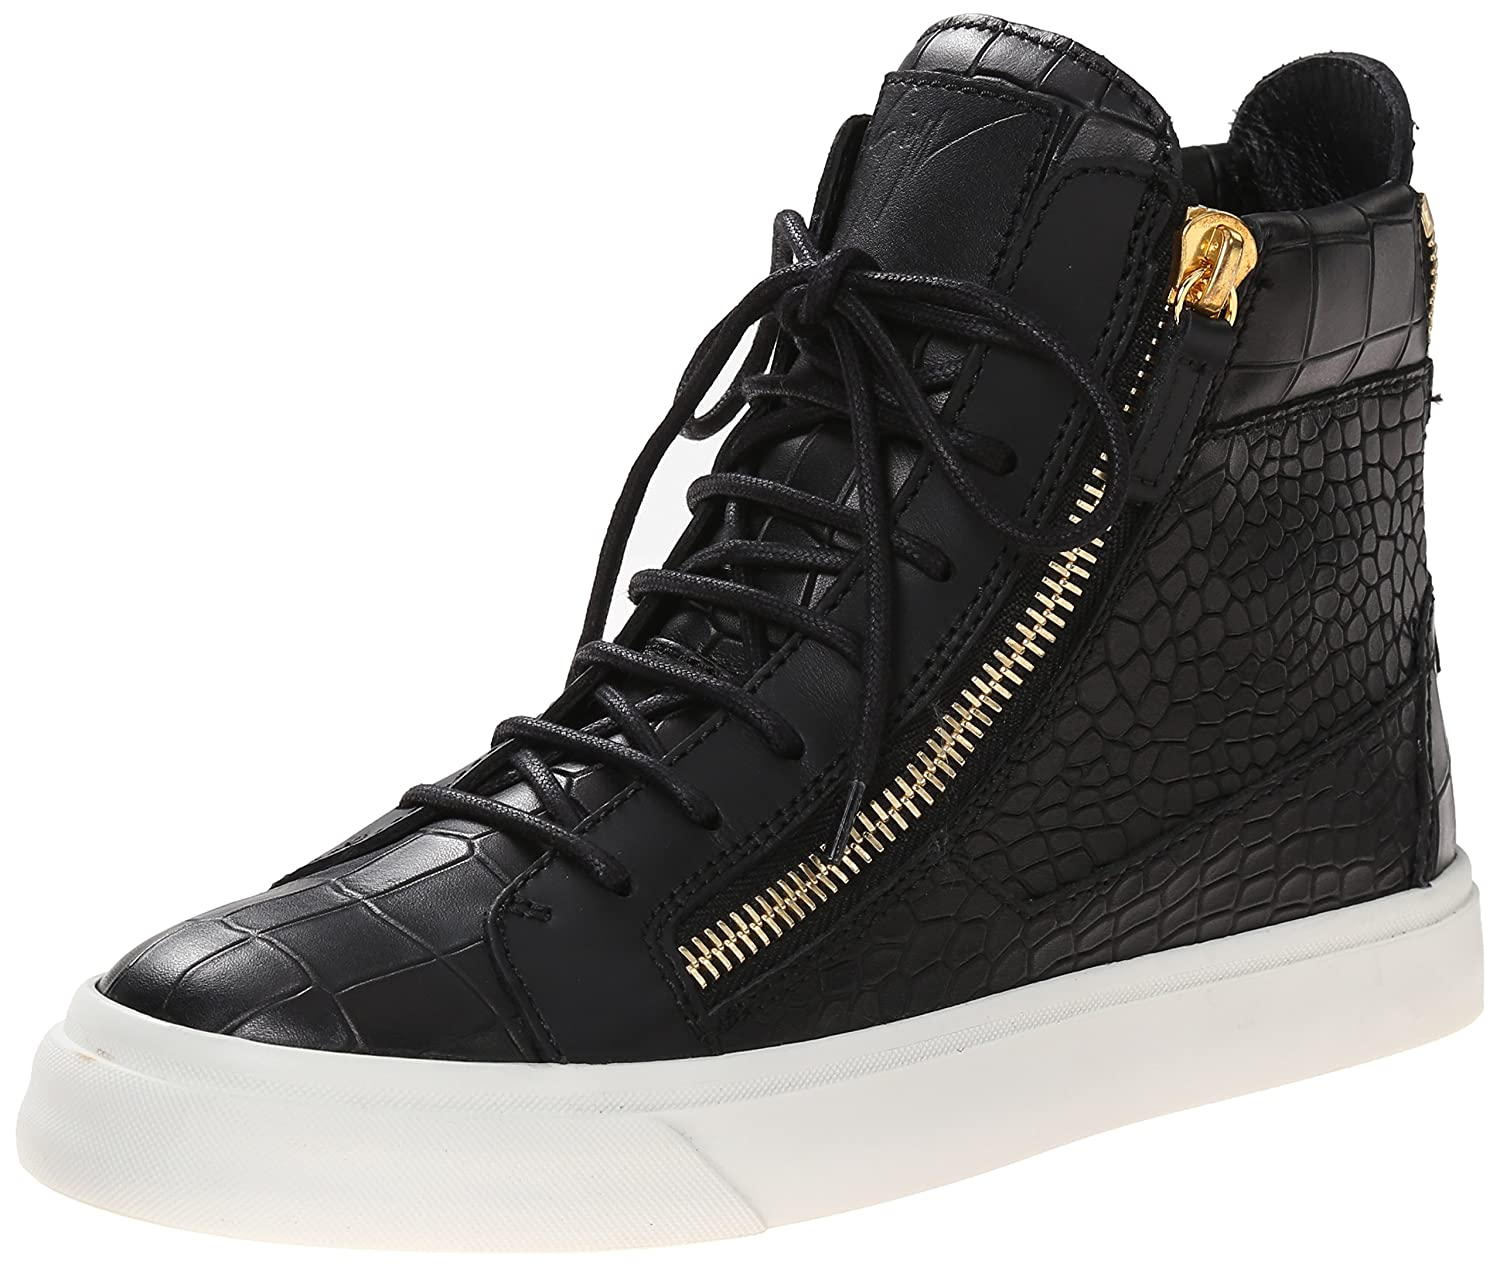 Women's Black Fashion Sneakers Giuseppe Zanotti Women s High